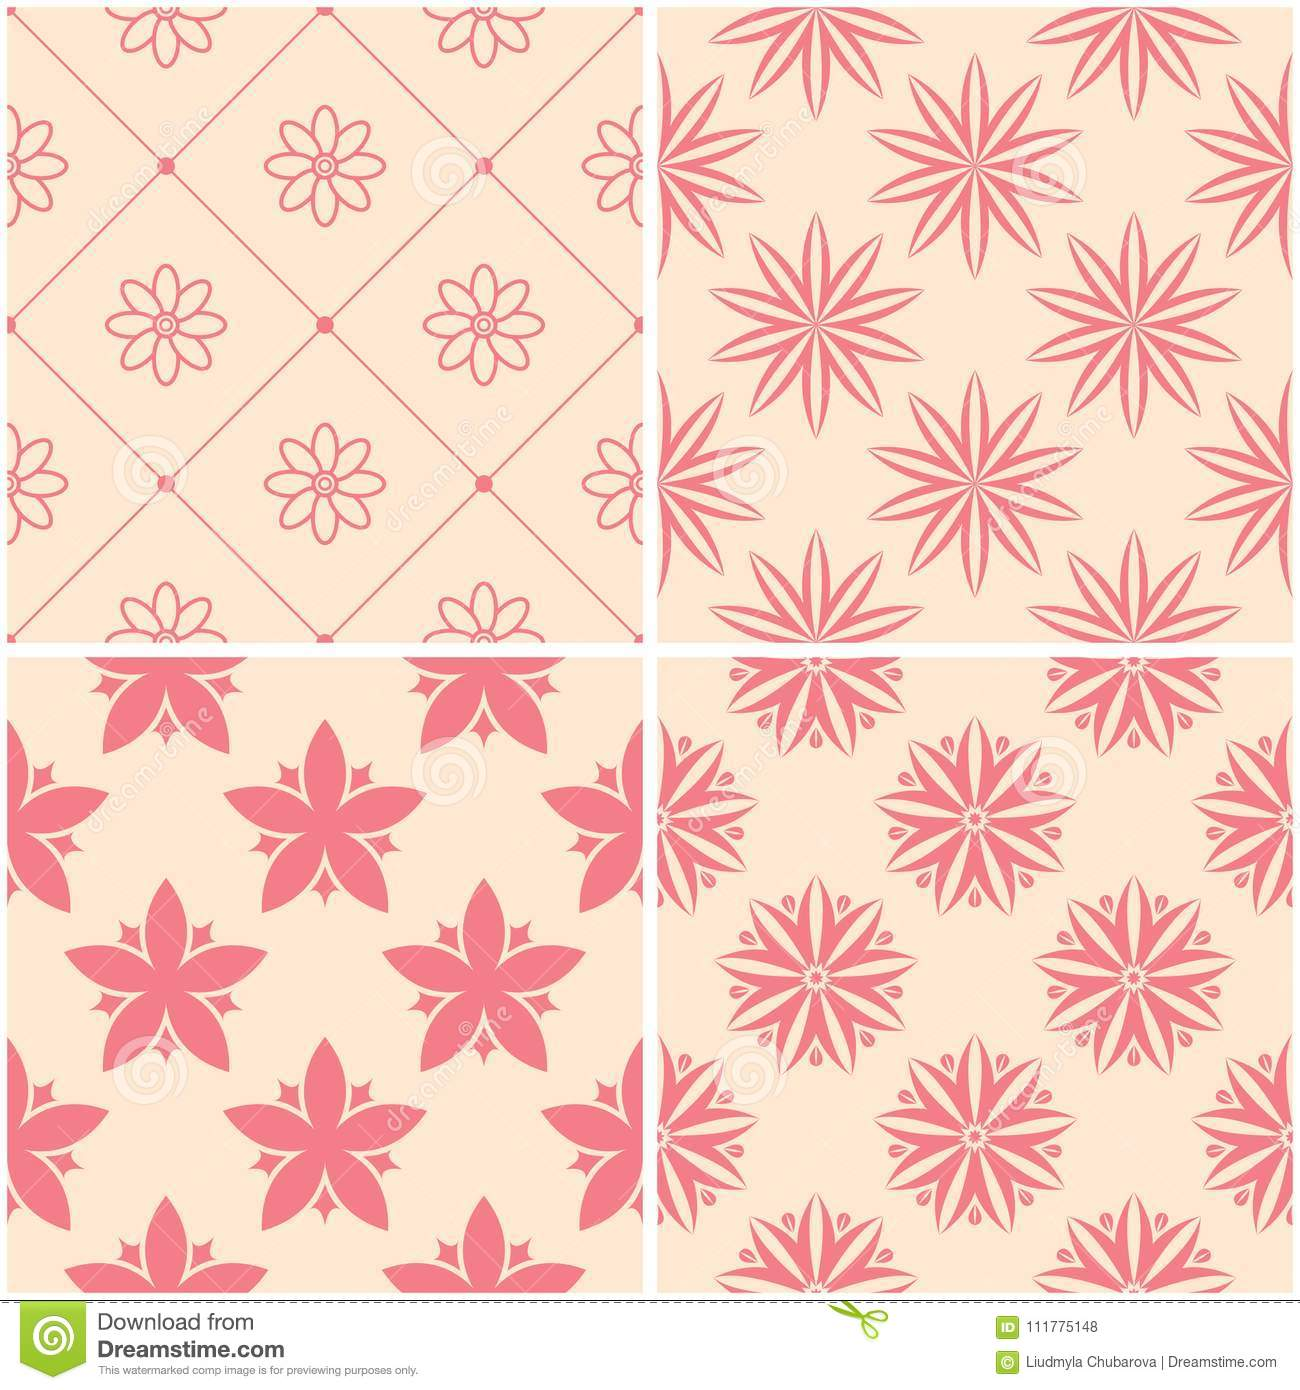 Floral patterns. Set of beige and red seamless backgrounds